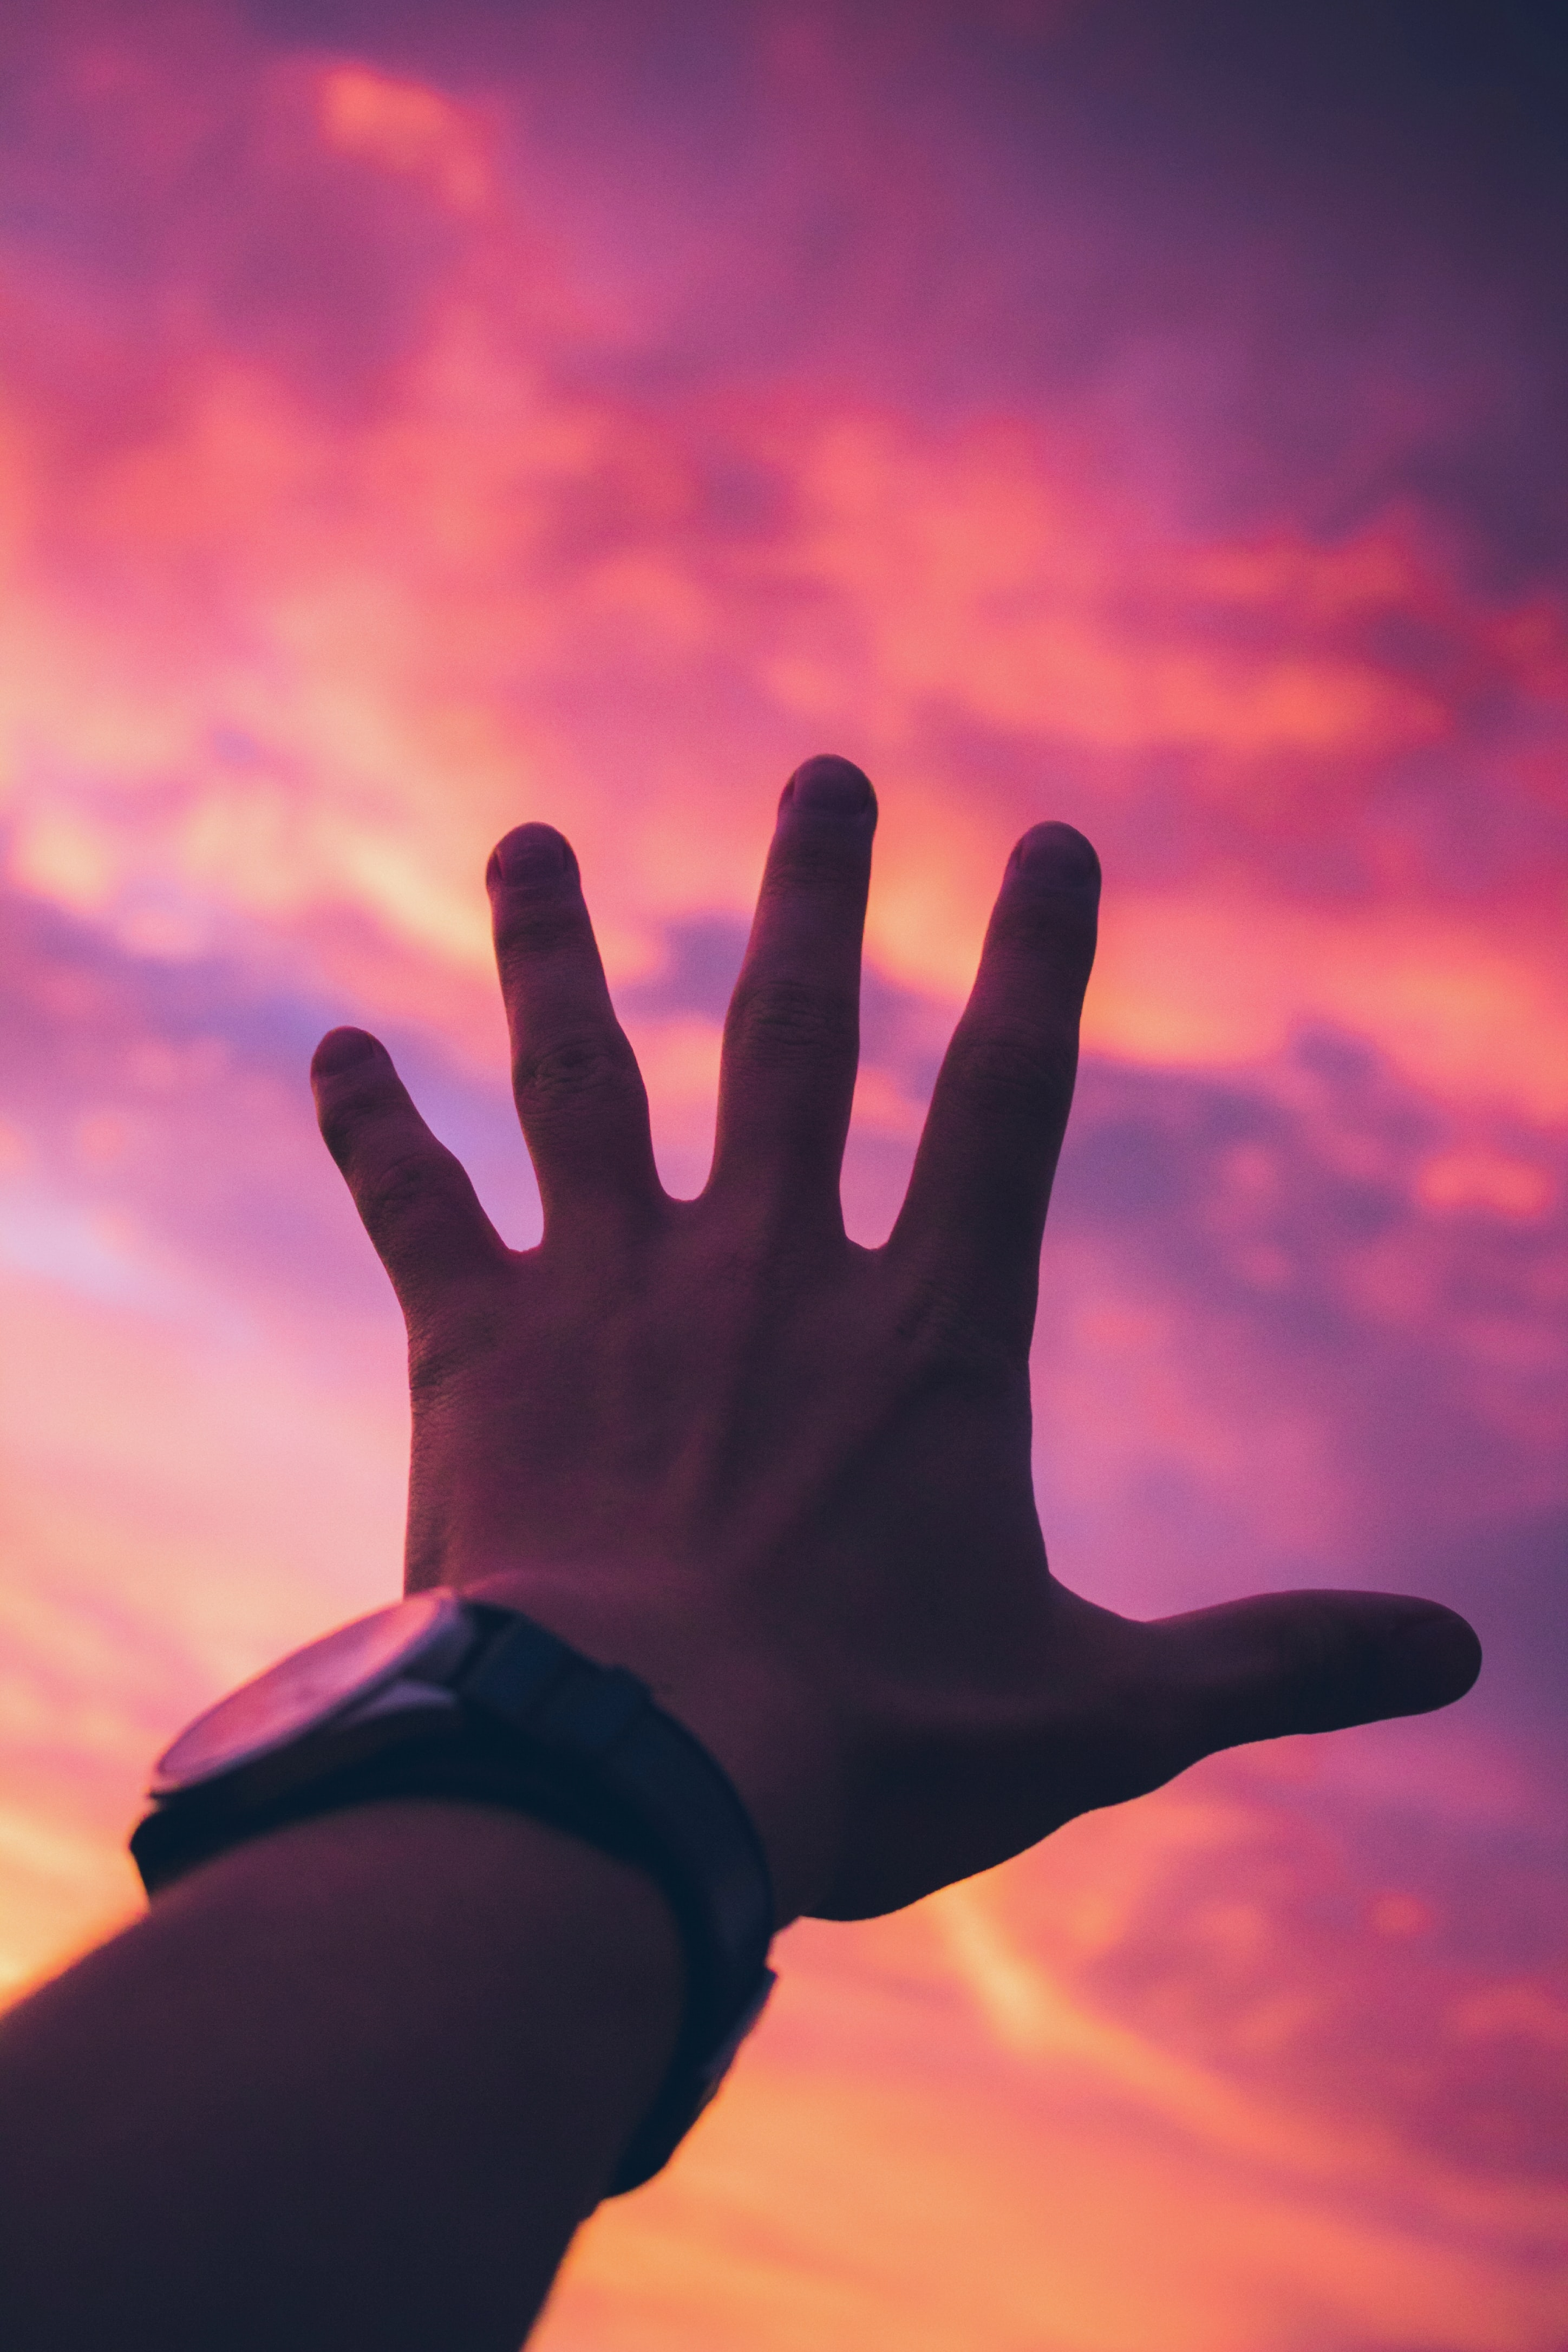 person with black watch reaching for orange sky